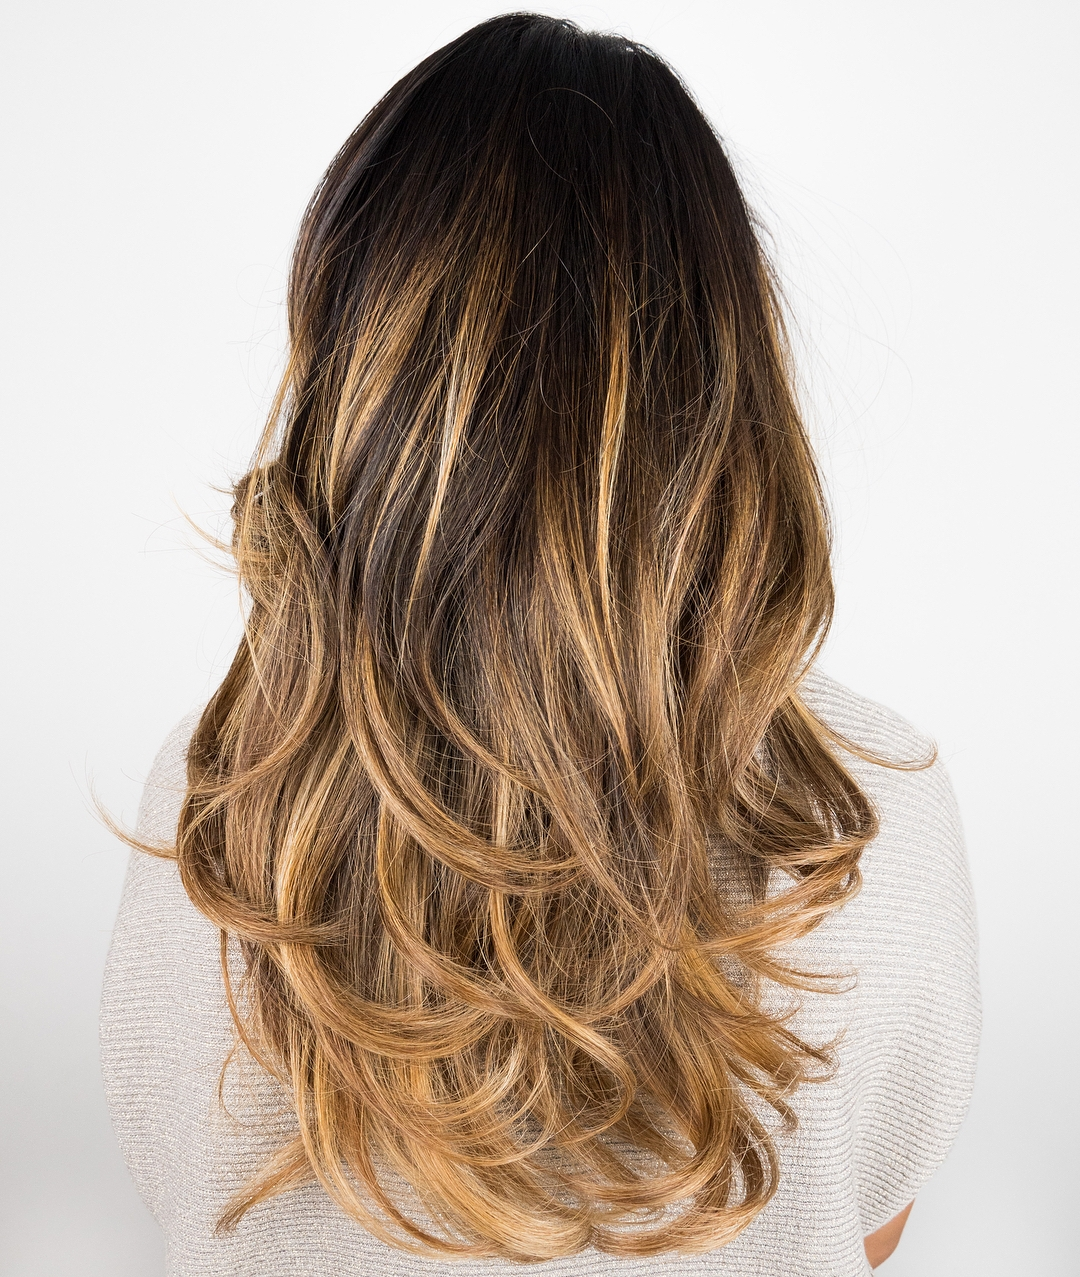 Long Hair with Long and Short Layers